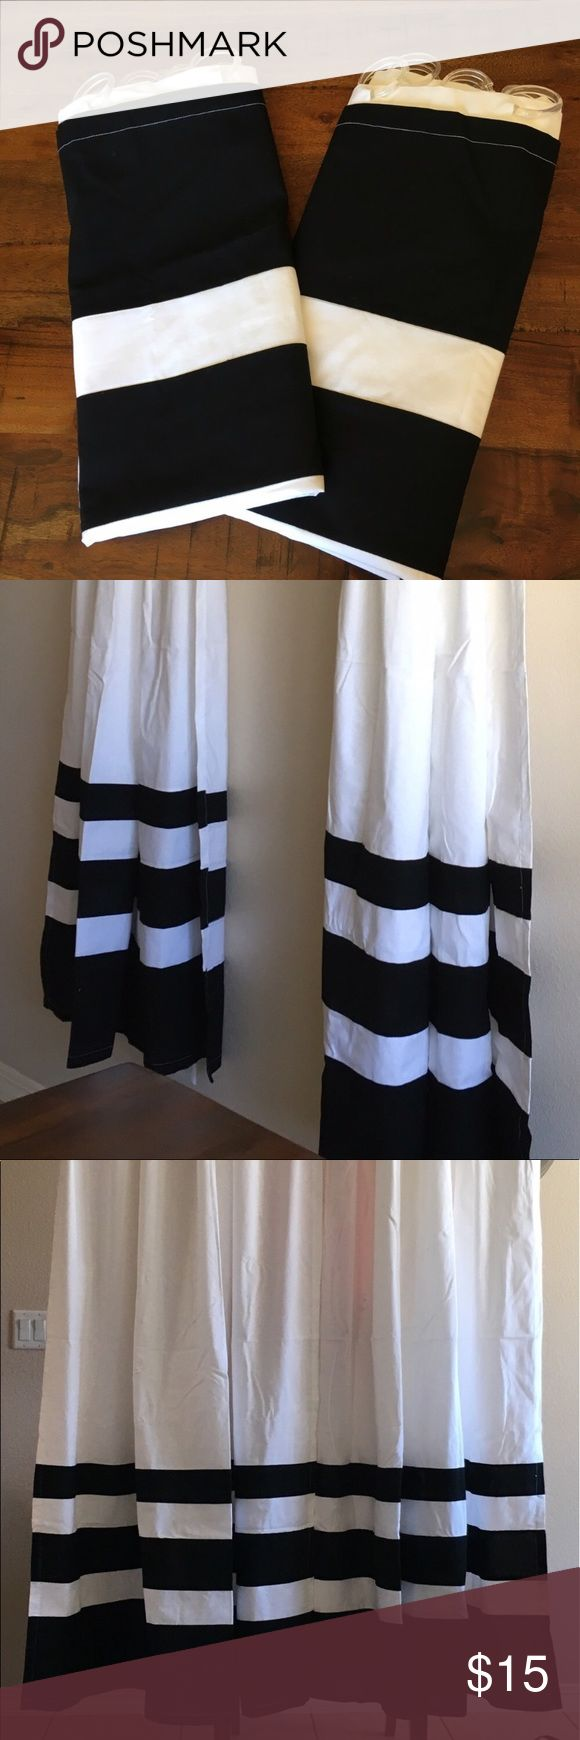 best 25 cream shower curtains ideas on pinterest elegant